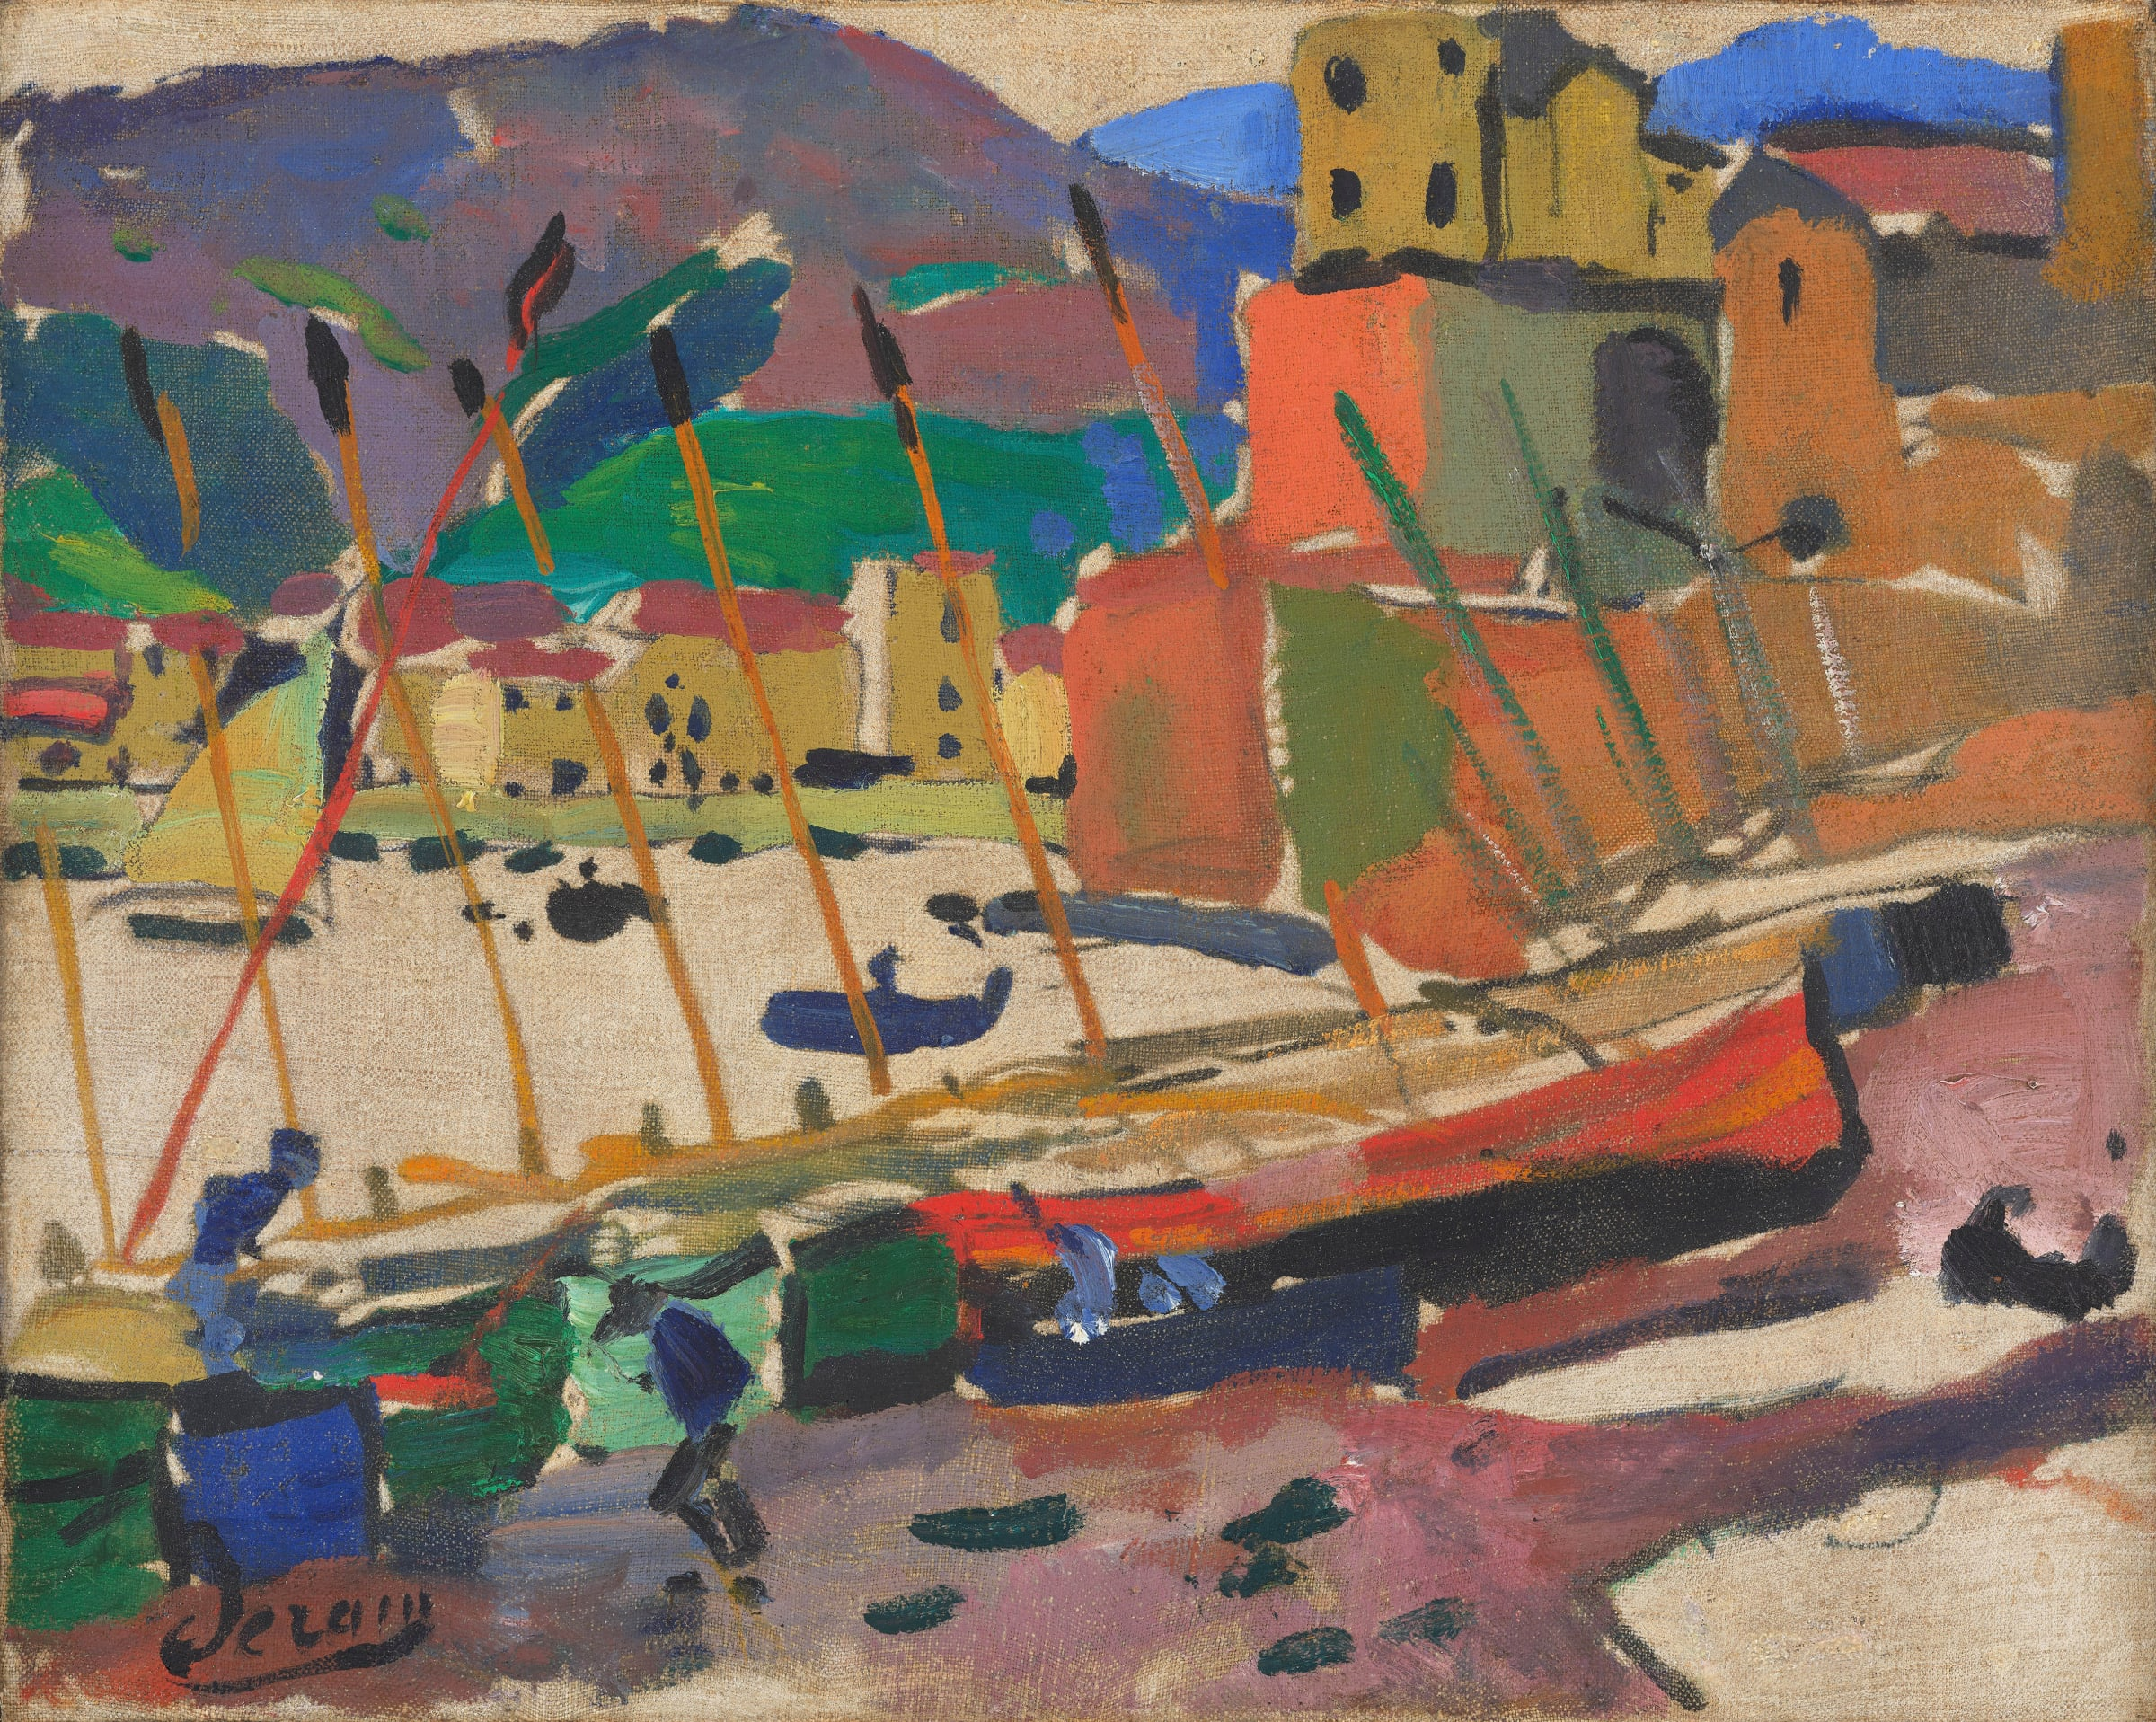 "<span class=""link fancybox-details-link""><a href=""/artists/35-andre-derain/works/9460-andre-derain-le-port-de-collioure-1905/"">View Detail Page</a></span><div class=""artist""><span class=""artist""><strong>André Derain</strong></span></div>